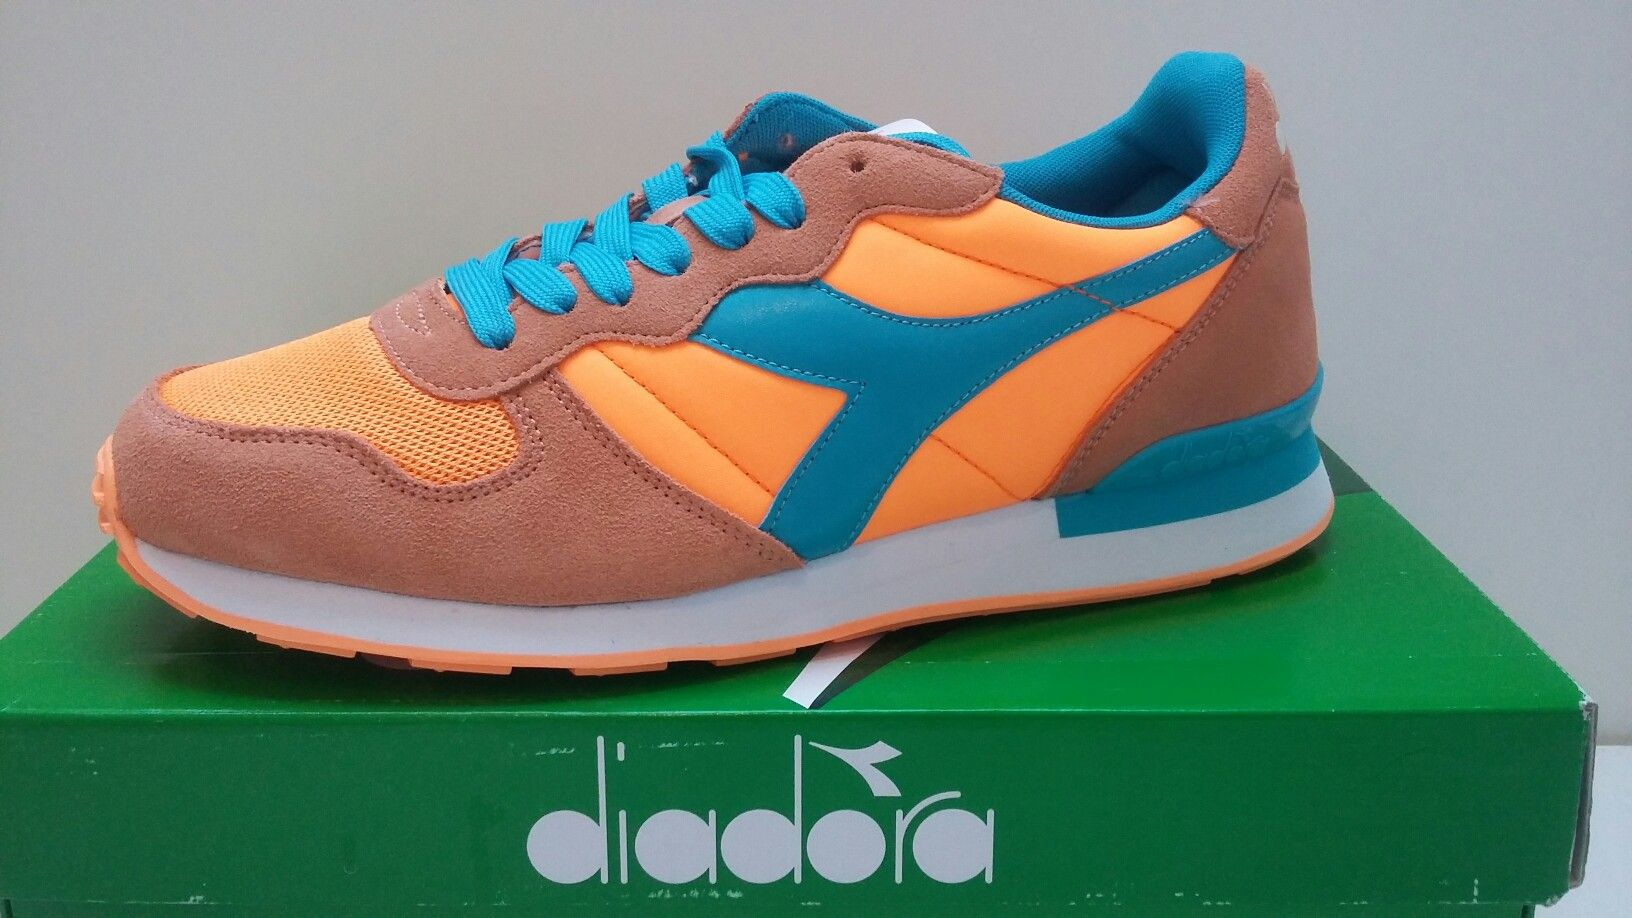 Diadora Camaro Orange Fluo and Cyan Blue | Sneakers | Fluo